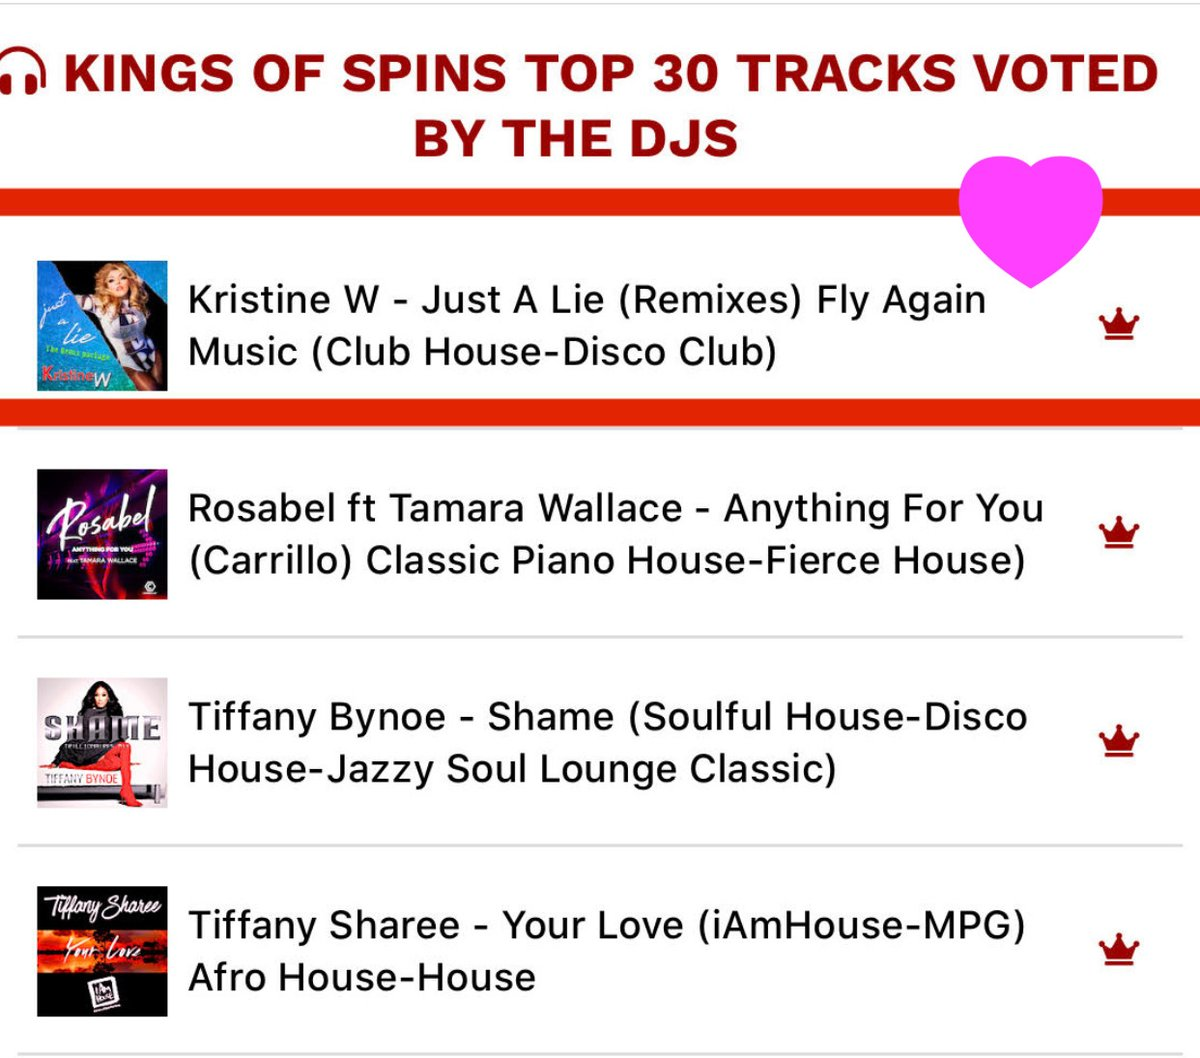 Thank you to @kingofspins, an international group of talented DJs and producers, for always supporting the music!  #dancediva #diva #JustALie #remix #remixes #DJ #house #housemusic #disco #indiemusic #KW💕 #KristineW